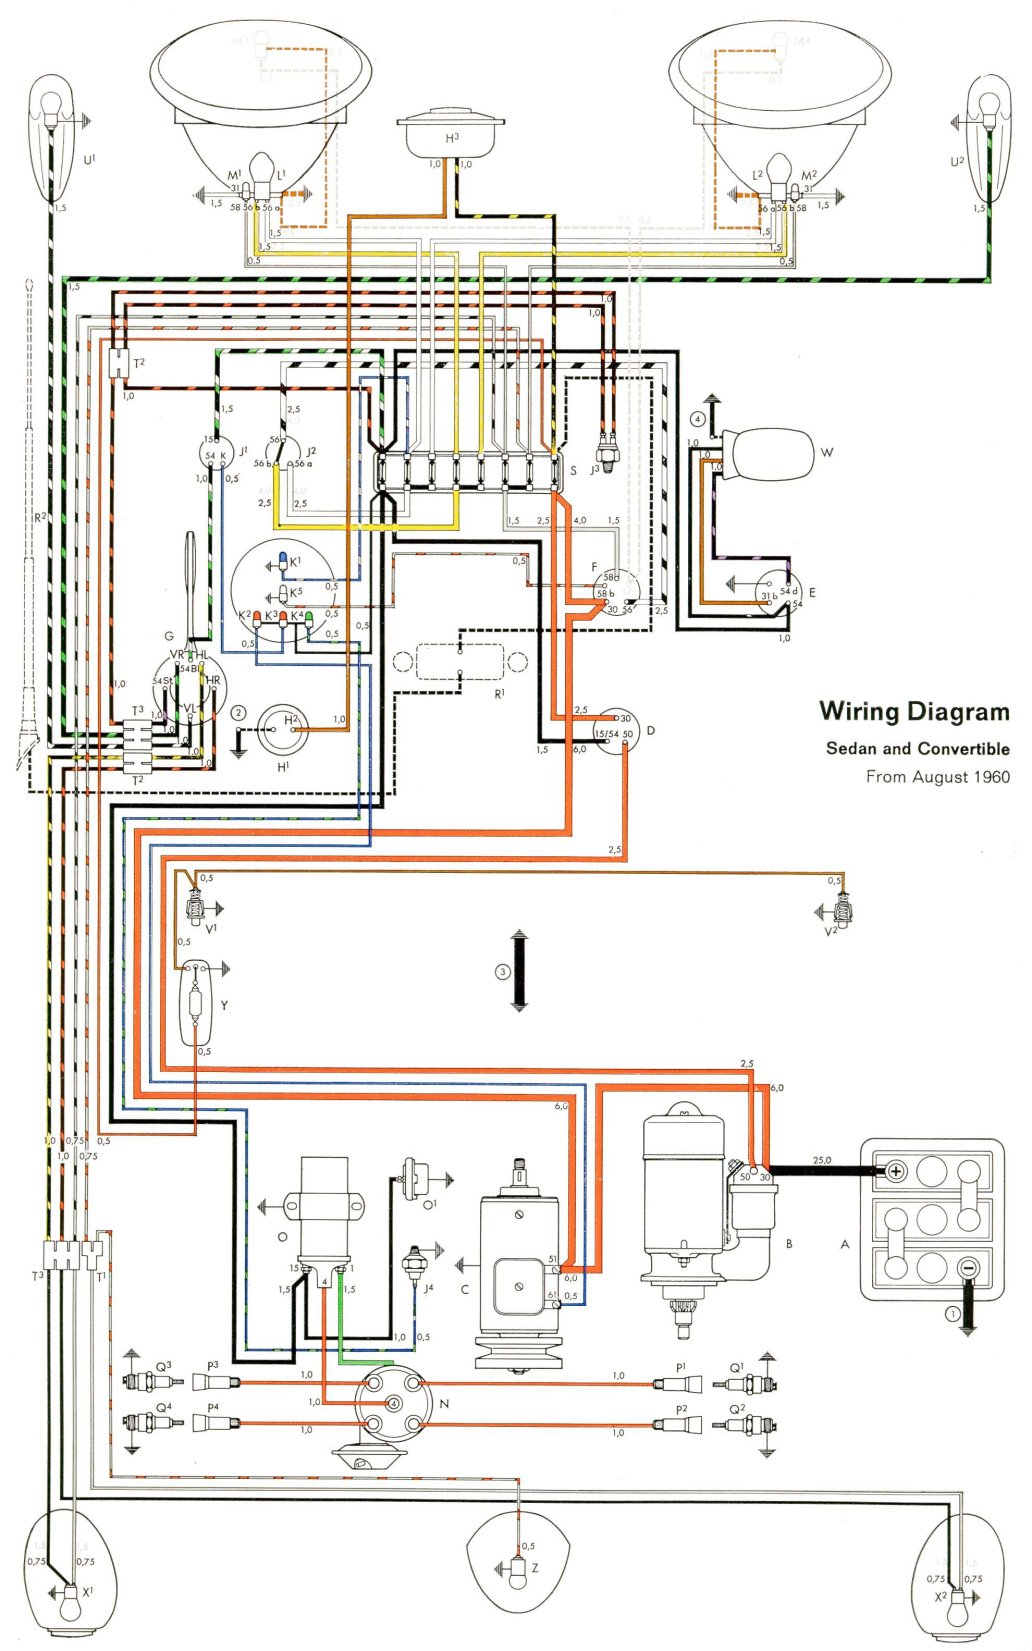 bug_61 1961 beetle wiring diagram thegoldenbug com vw beach buggy wiring diagram at creativeand.co